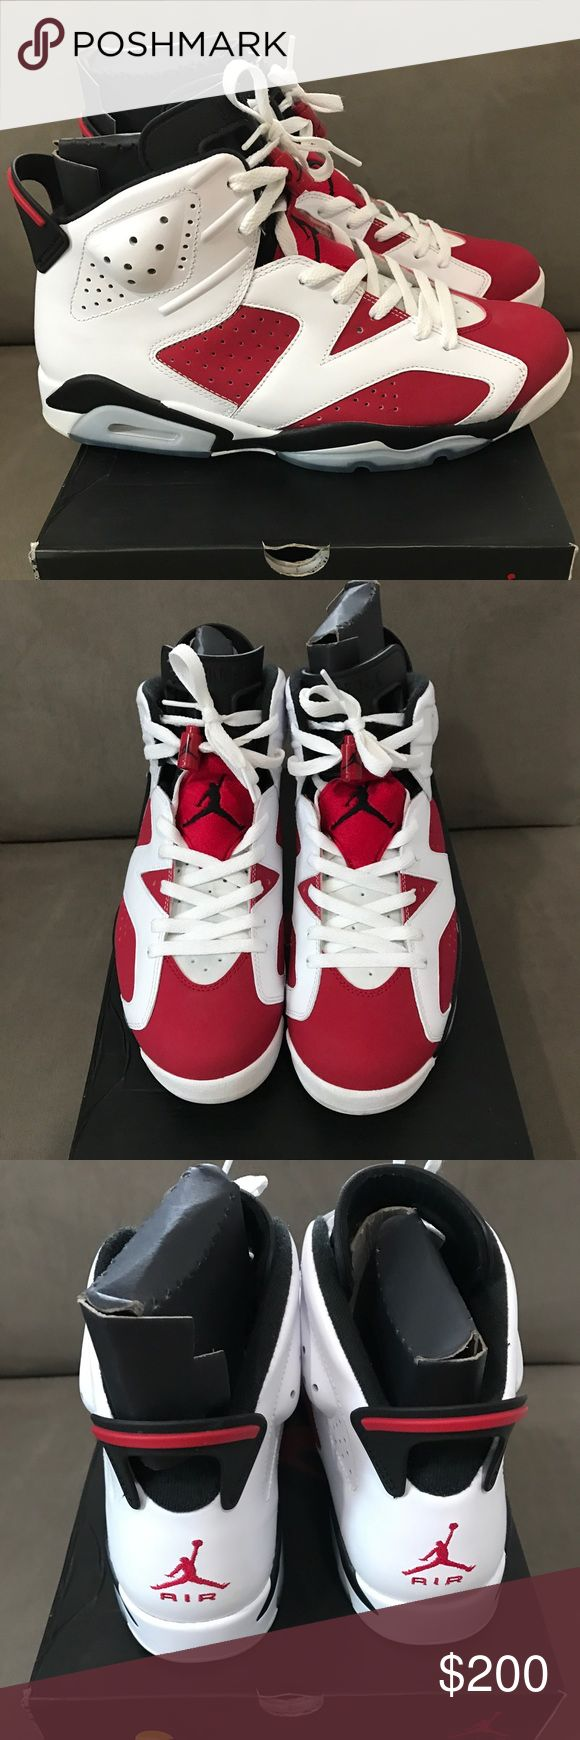 "Air Jordan Retro 6 ""Carmine"" Super Clean! I only wore these around the house. Never touched concrete. Too clean! Nike Shoes Sneakers"